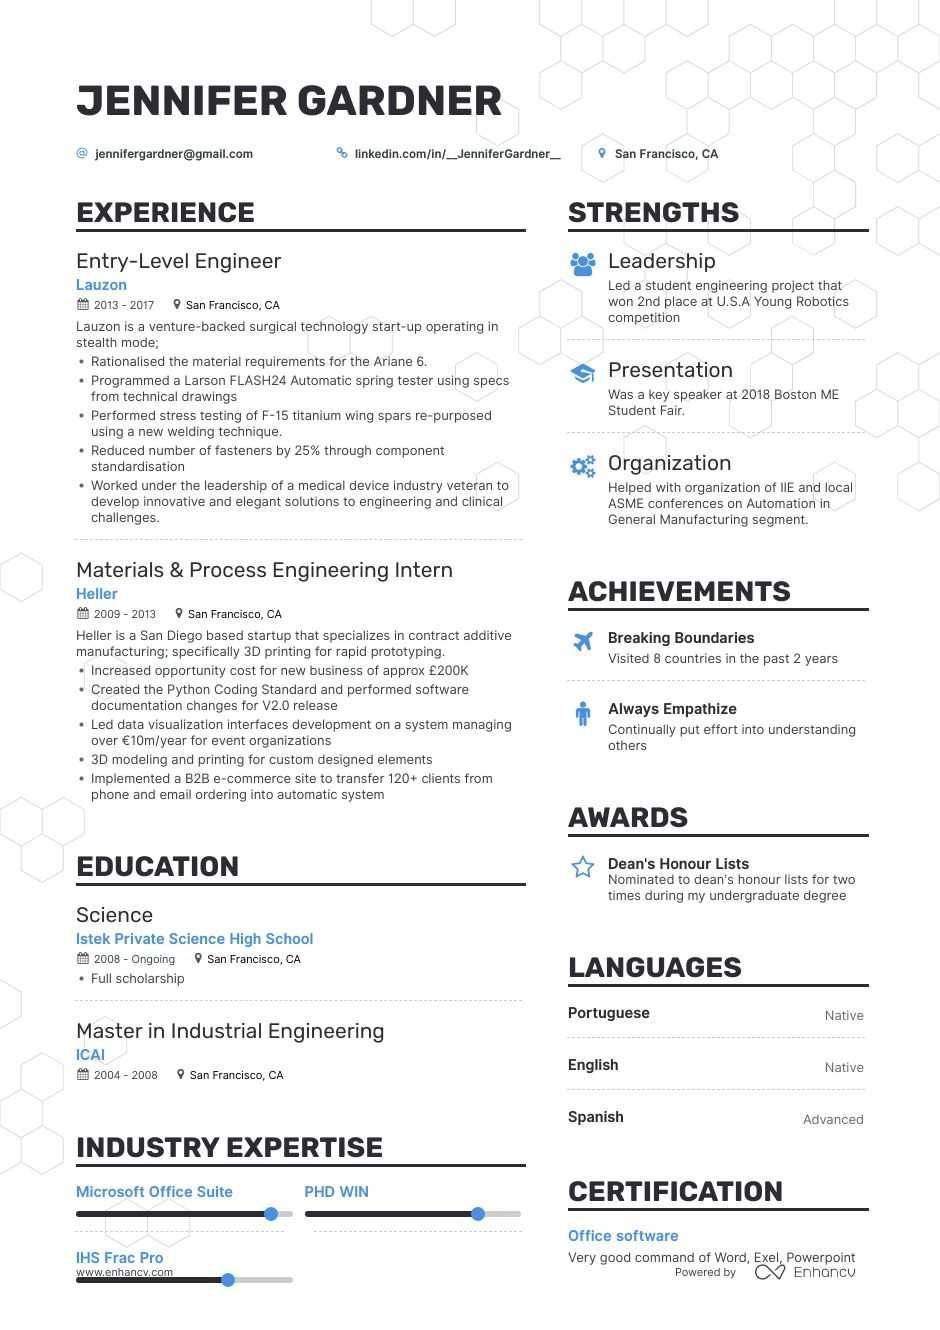 The Best Entry Level Engineer Resume Examples & Skills to